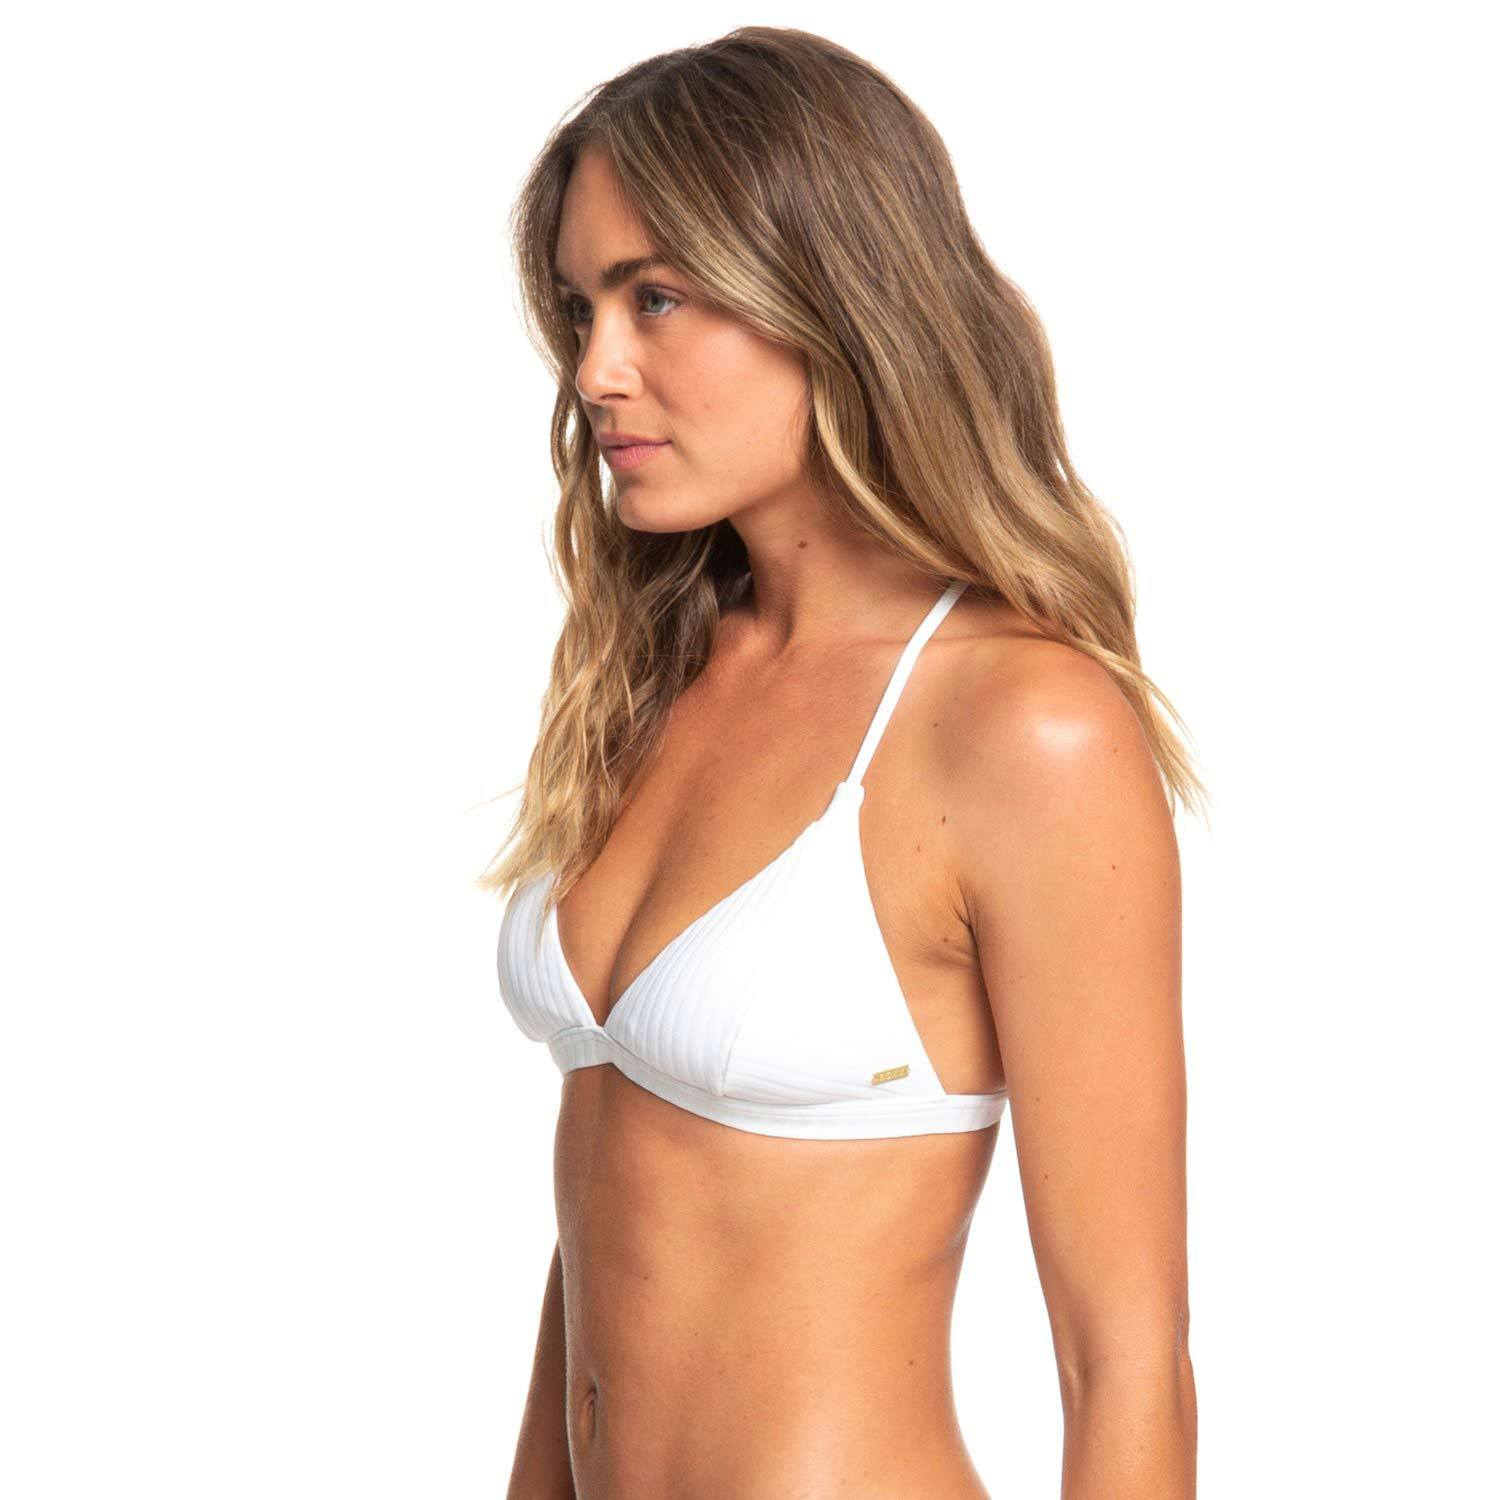 b2f09354f195c Women's Color My Life Triangle Bikini Top Enlarged view of picture, opens  dialog